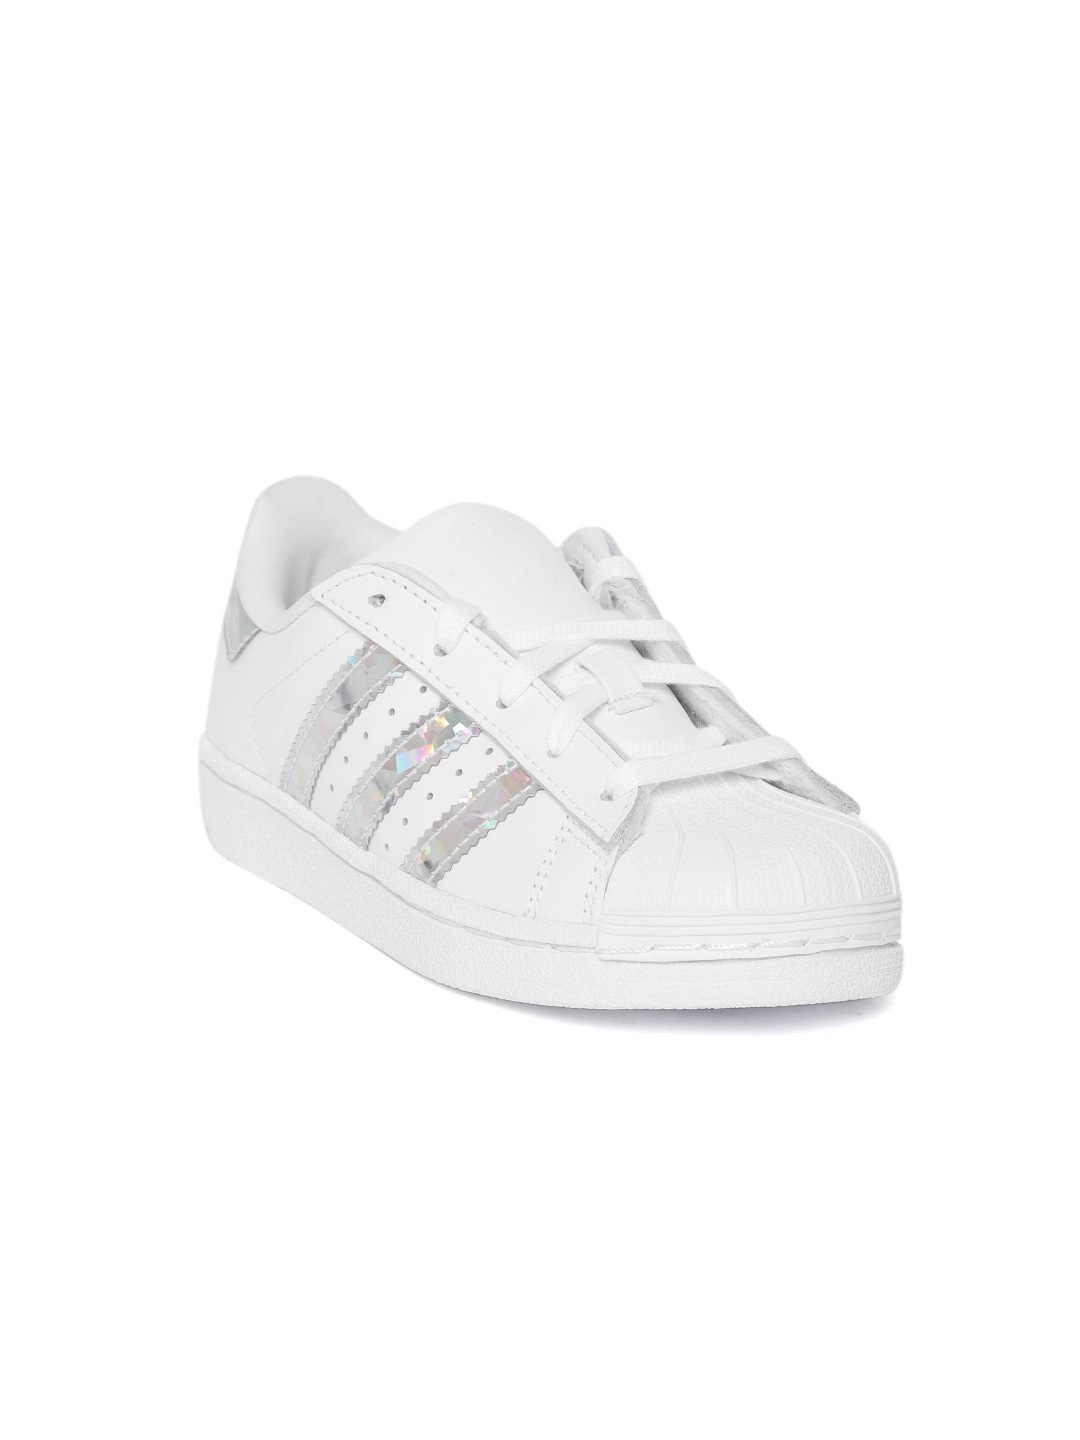 detailed pictures f9283 c5fdd Adidas Superstar Shoes - Buy Adidas Superstar Shoes Online - Myntra